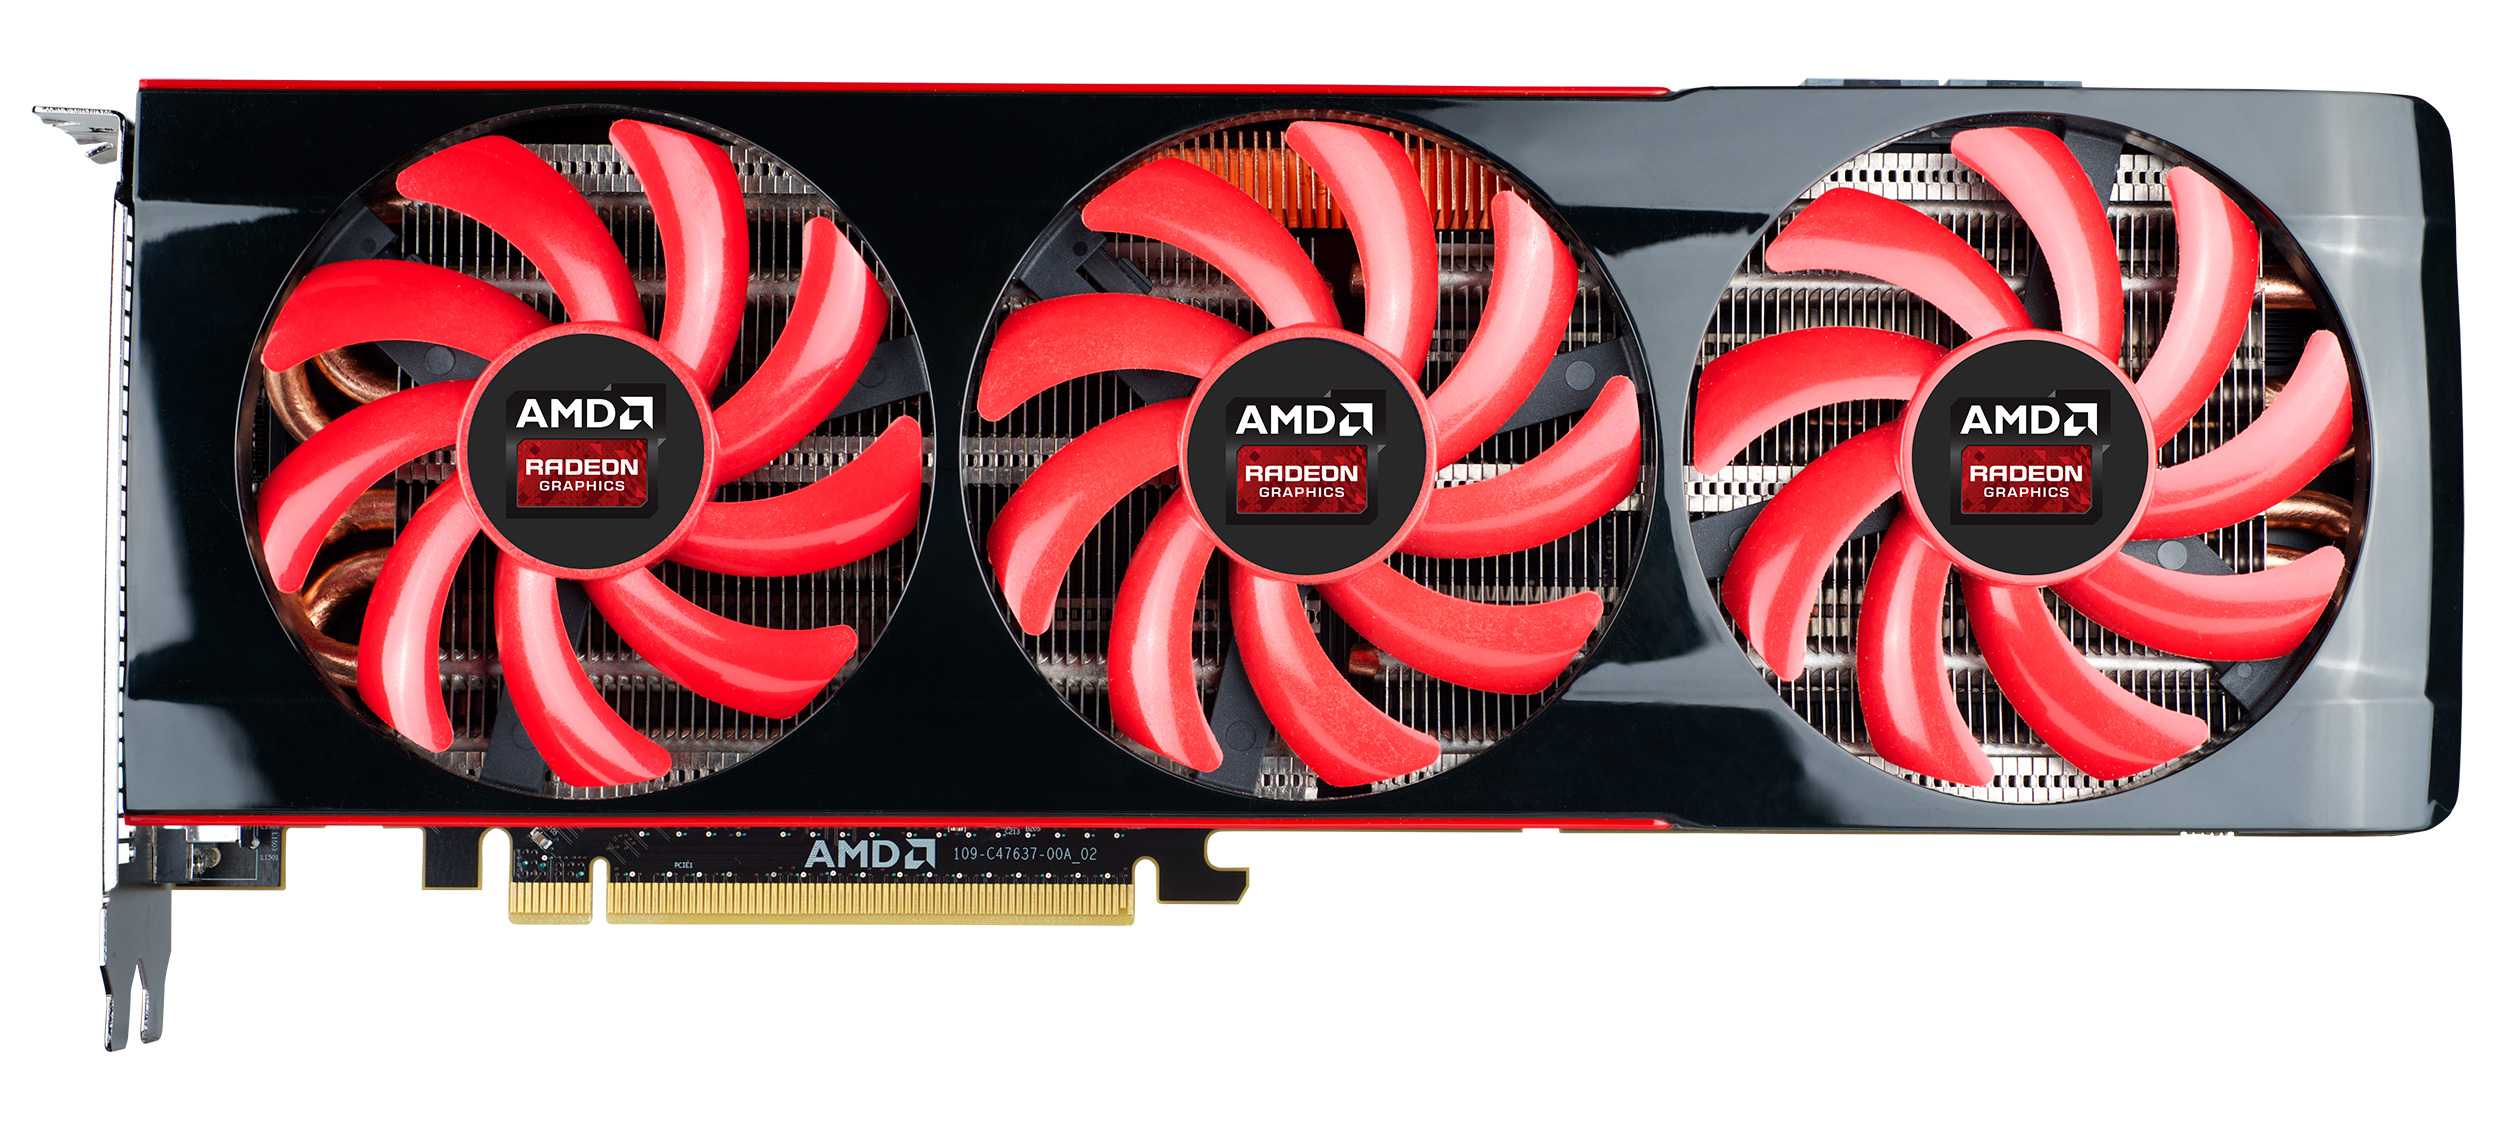 Revisiting the Radeon HD 7990 & Frame Pacing - The AMD Radeon R9